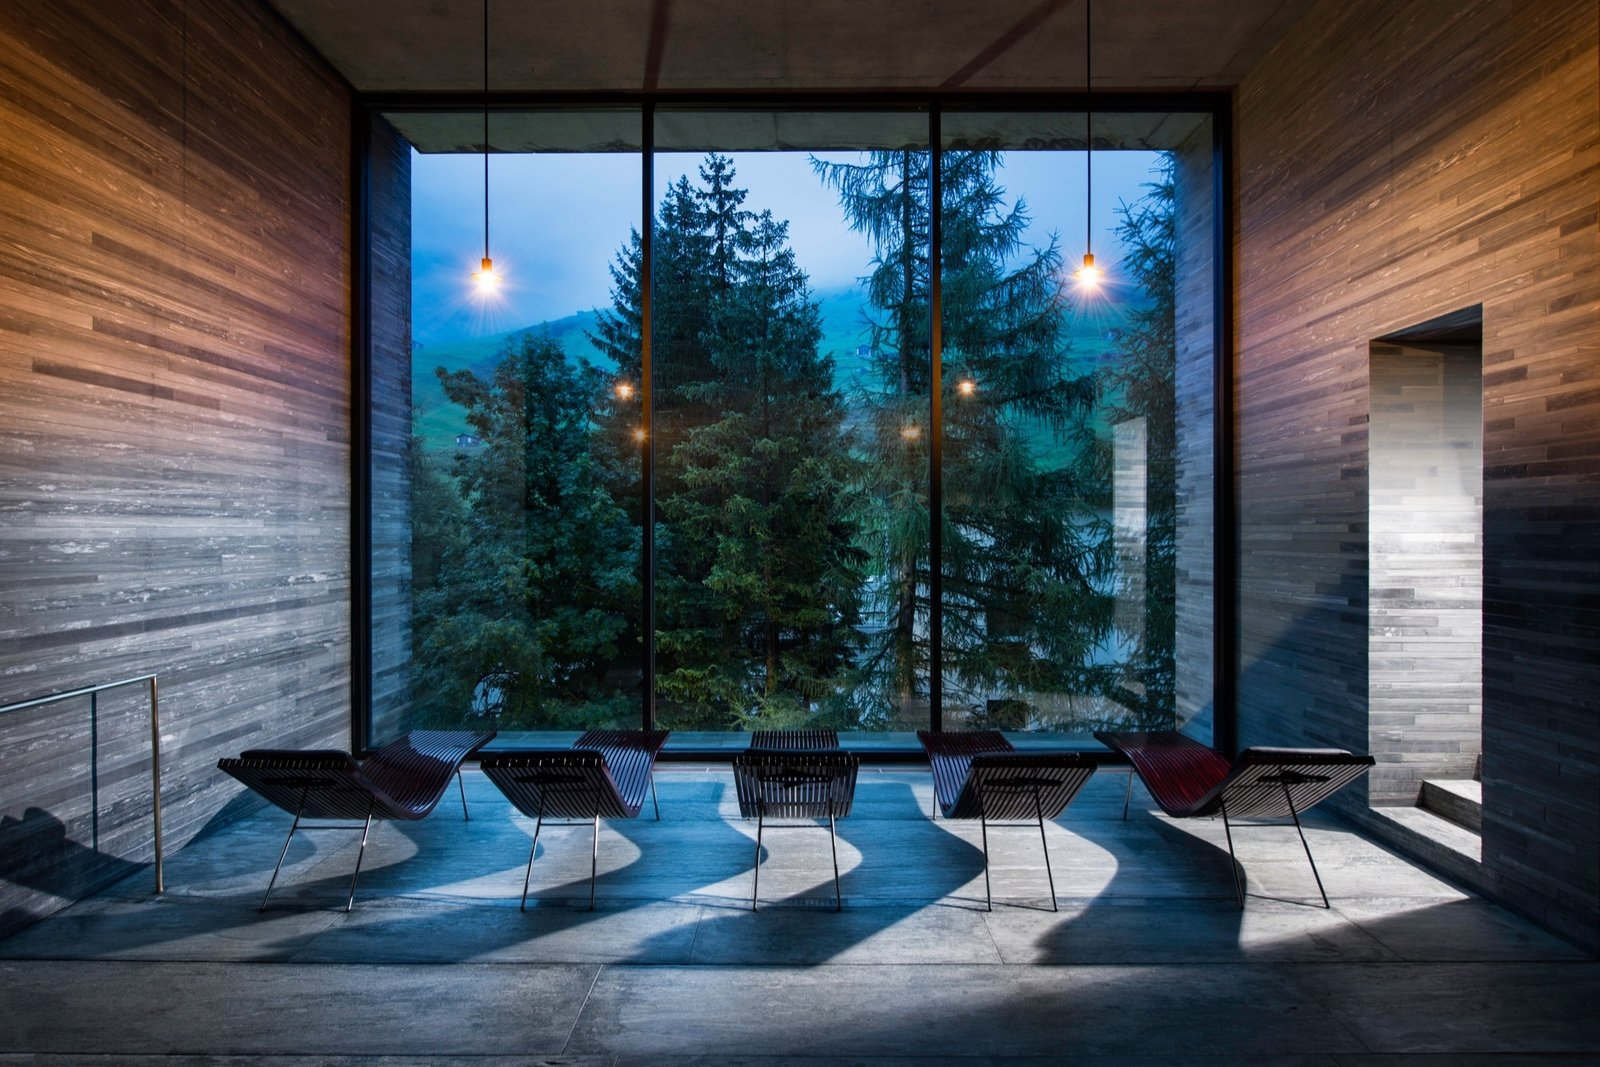 Therme Vals / Designed by architect Peter Zumthor  Photo 6 of 12 in Slow Architecture